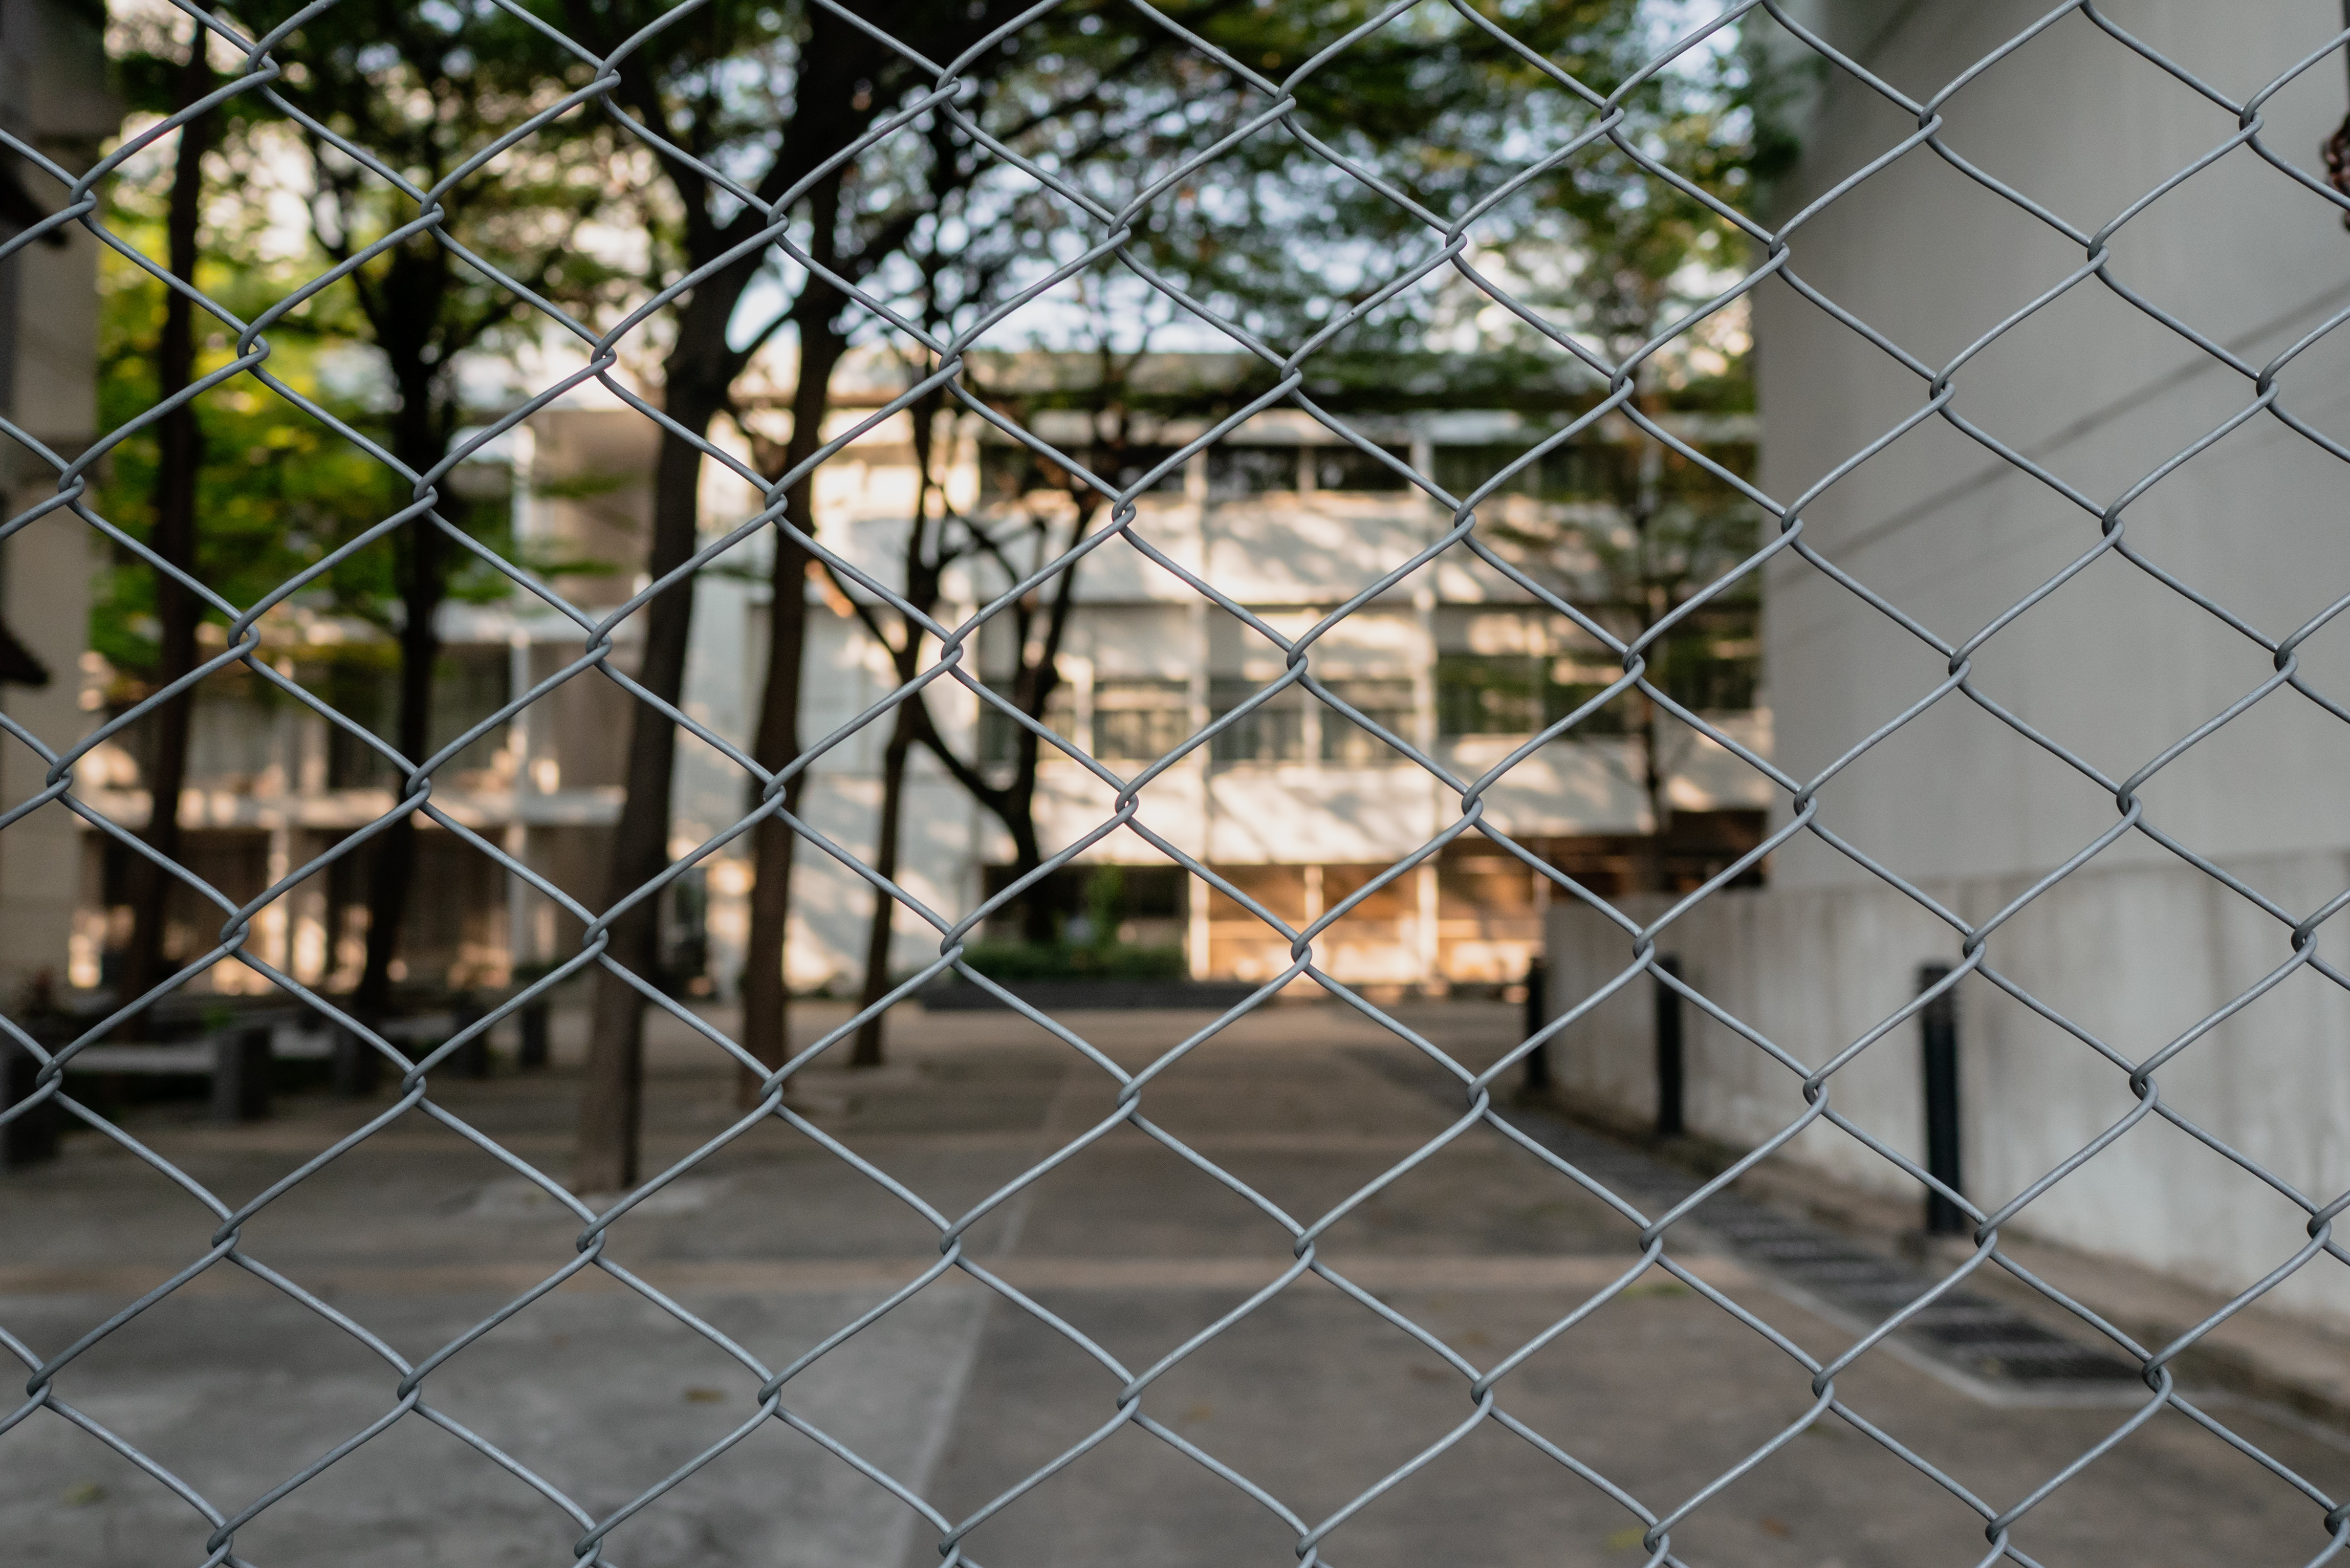 Chain link fence in front of the building